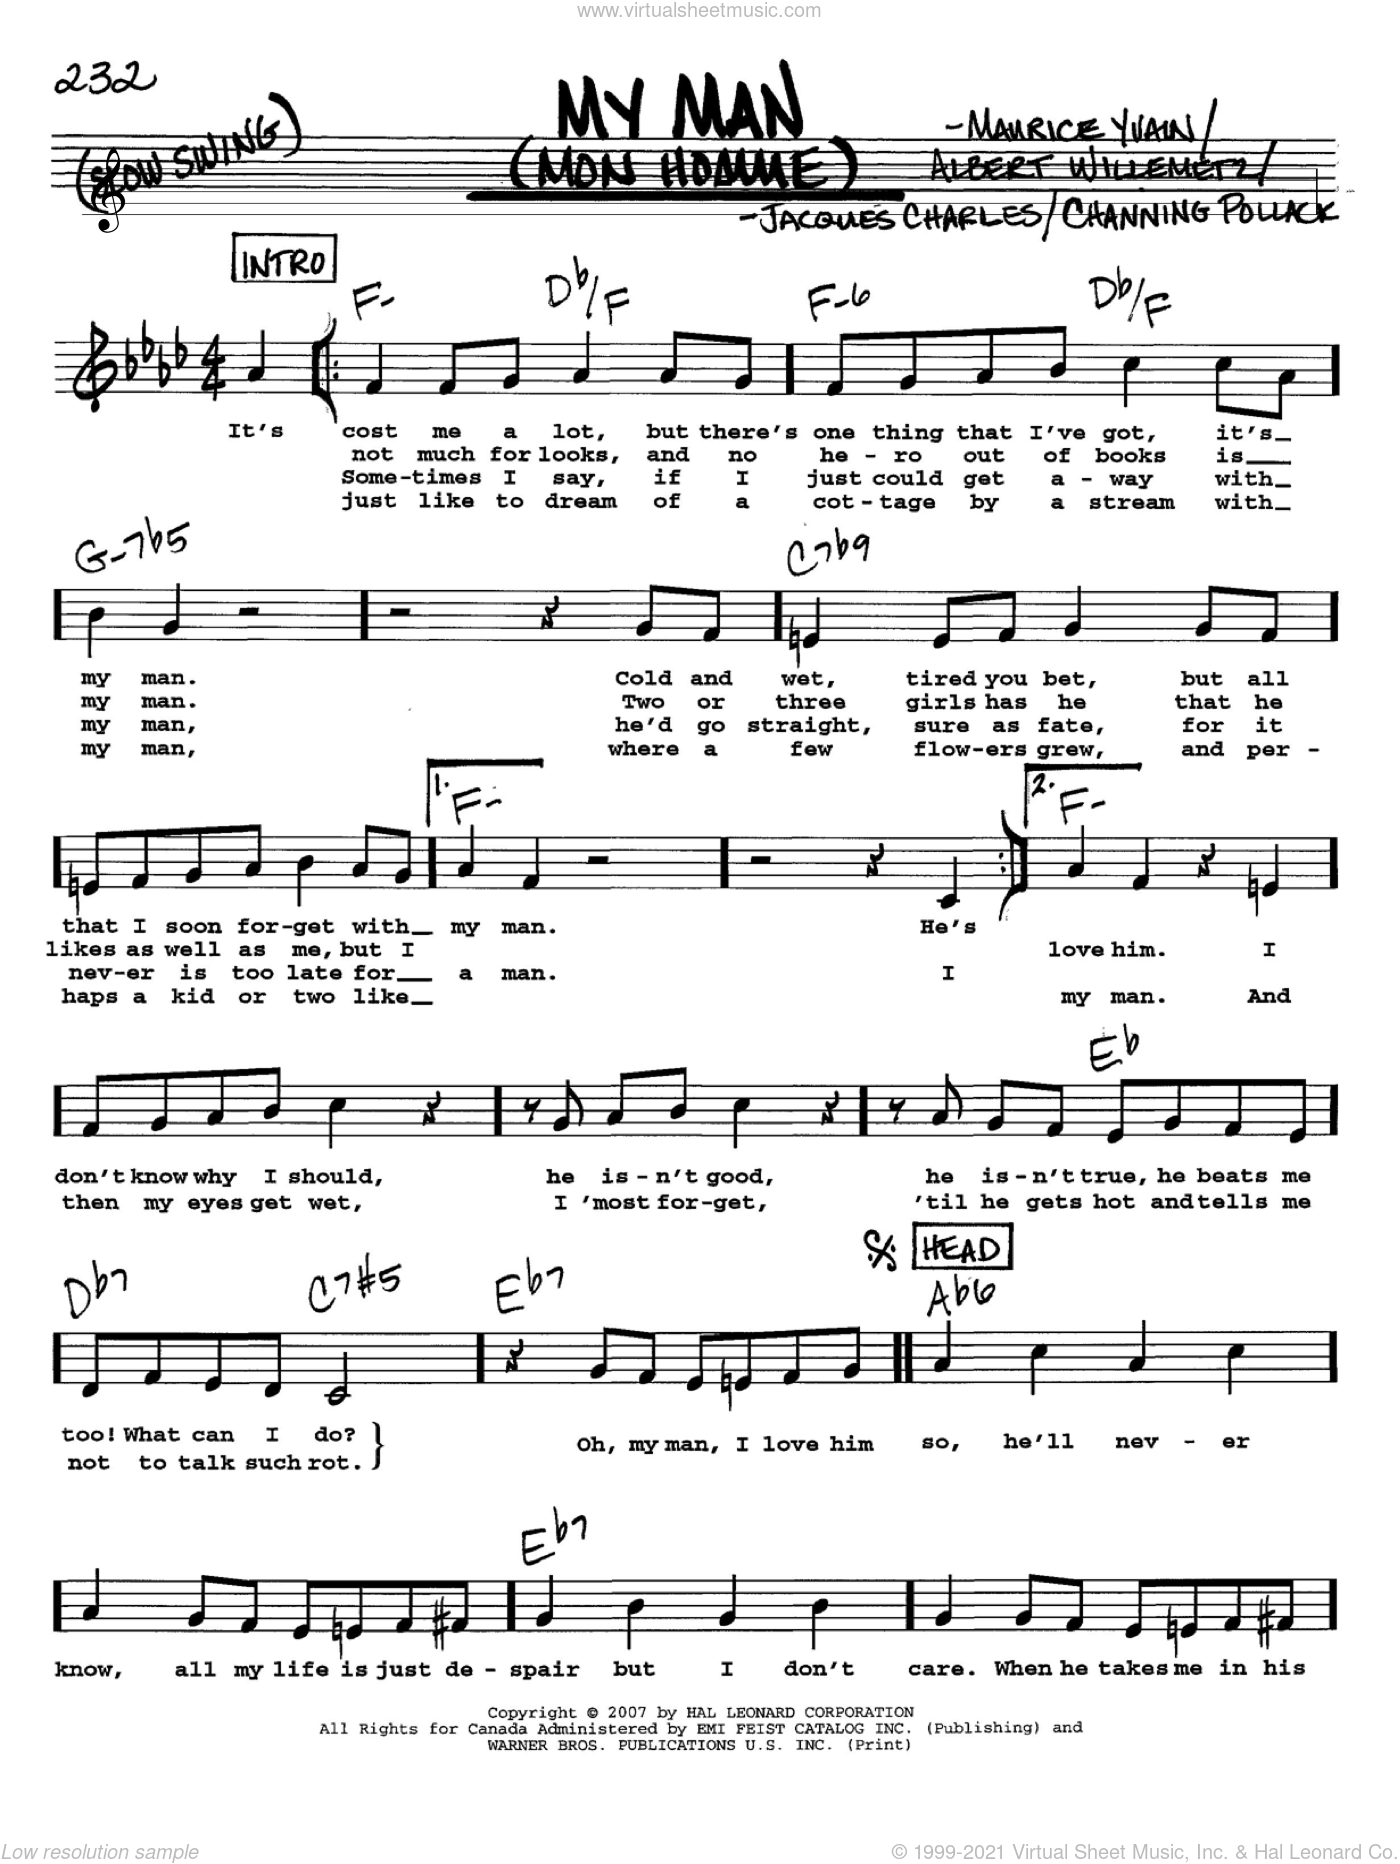 My Man (Mon Homme) sheet music for voice and other instruments (Vocal Volume 2) by Maurice Yvain, Albert Willemetz, Channing Pollock and Jacques Charles. Score Image Preview.